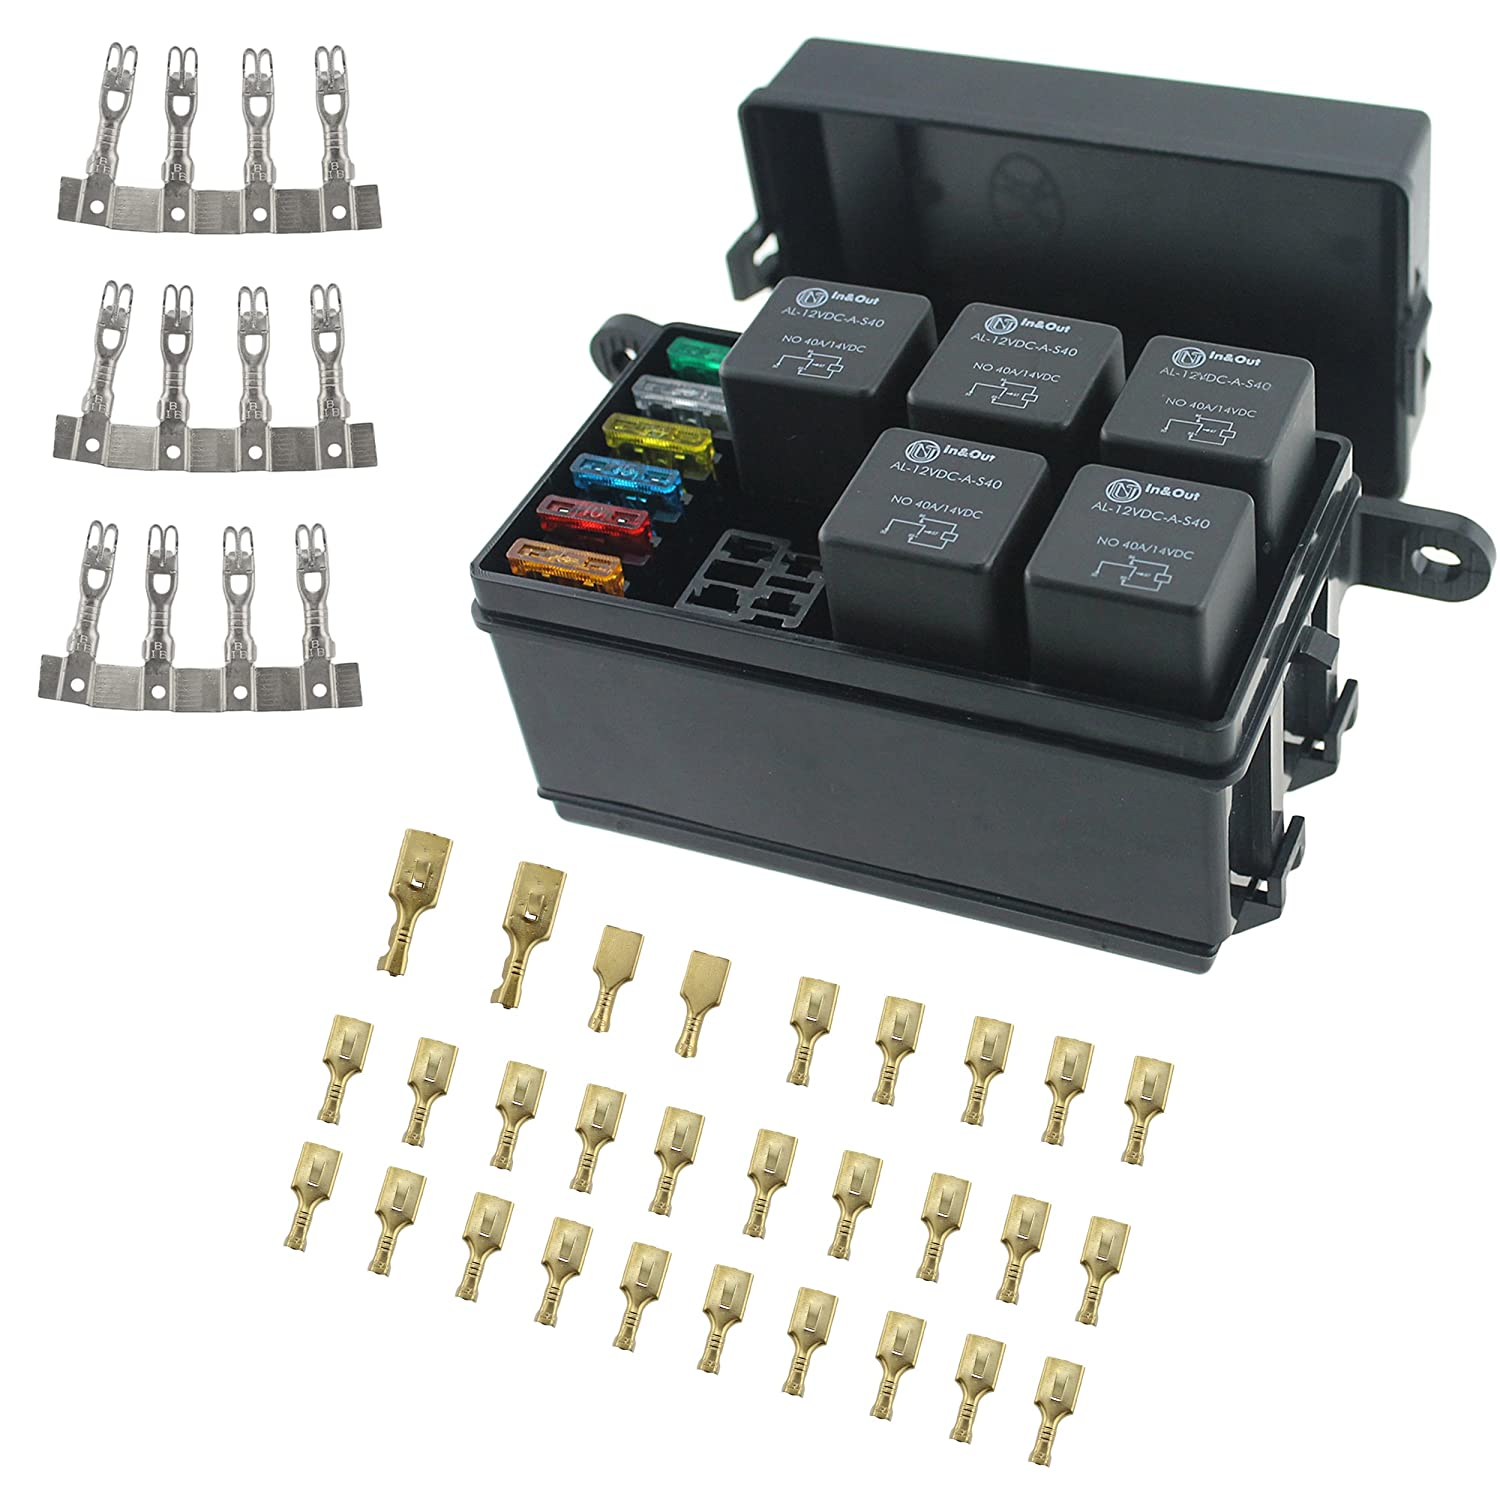 6 Way Blade Fuse Holder Box, 12-Slot Relay Box with Spade Terminals and Fuses, 6PCS 4Pin 12V 40A Relays for car Truck Trailer and Boat iztor